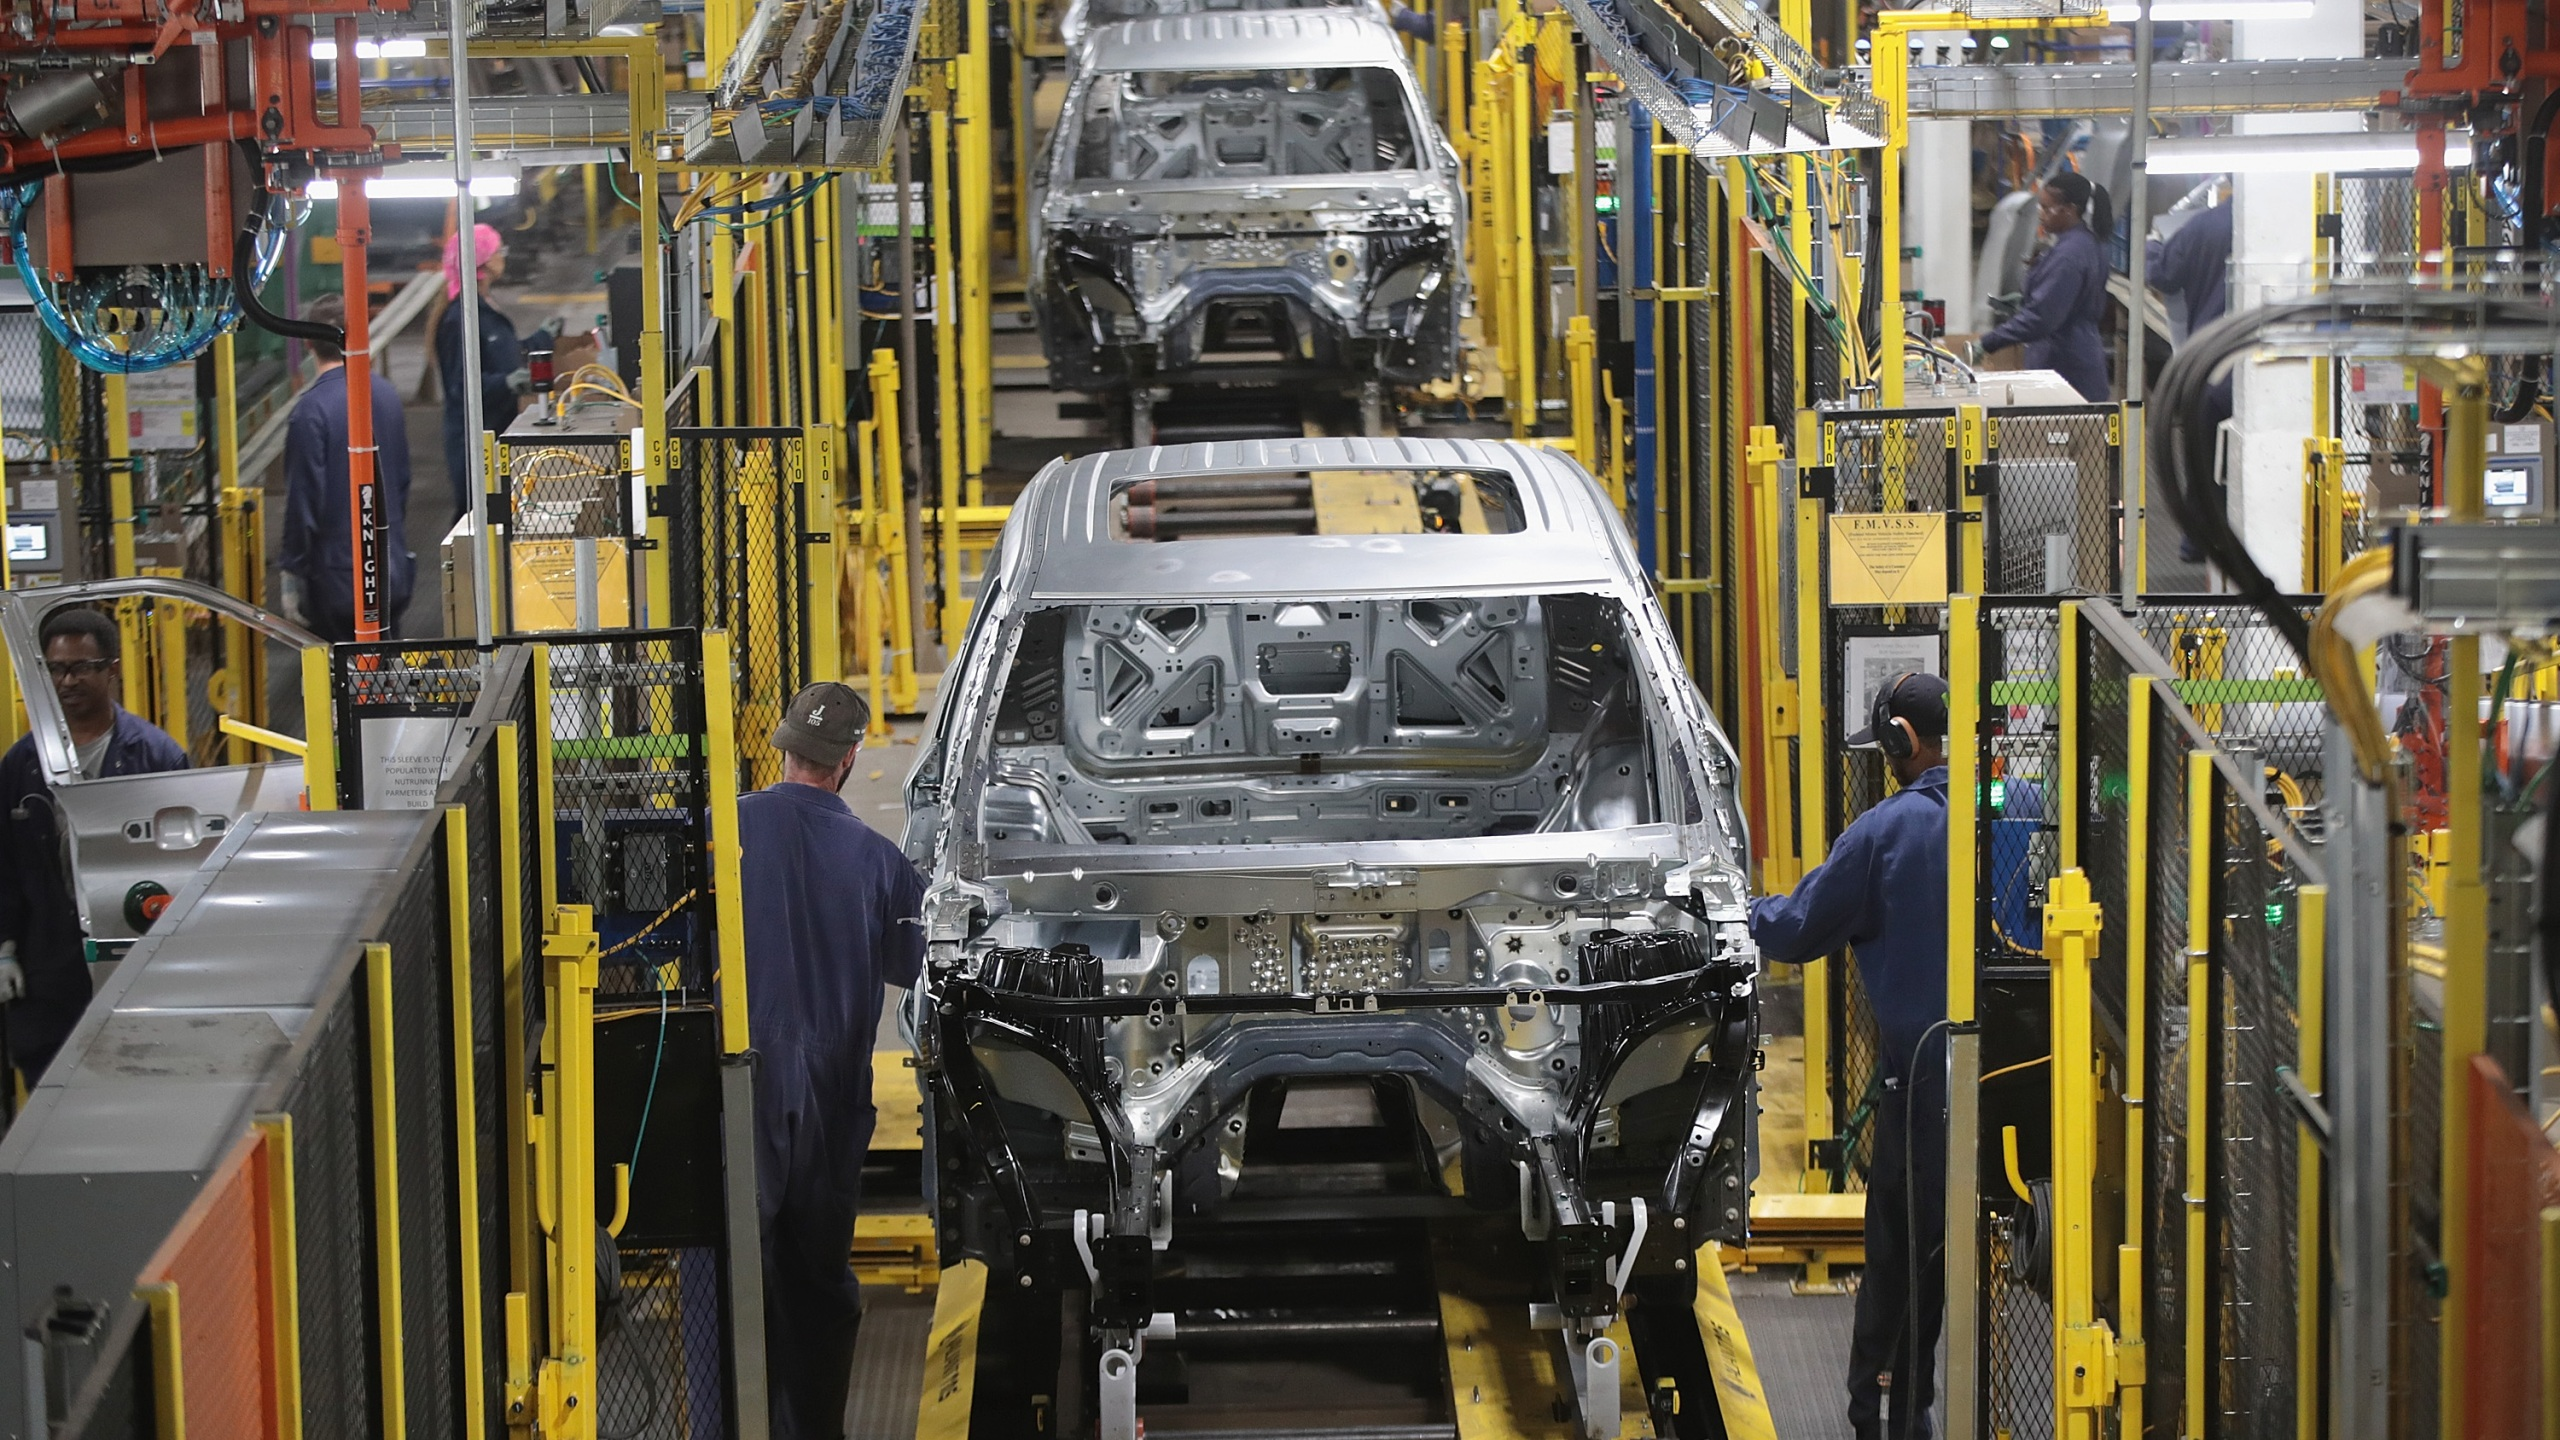 Workers assemble Ford vehicles at the Chicago Assembly Plant on June 24, 2019 in Chicago, Illinois. (Scott Olson/Getty Images)